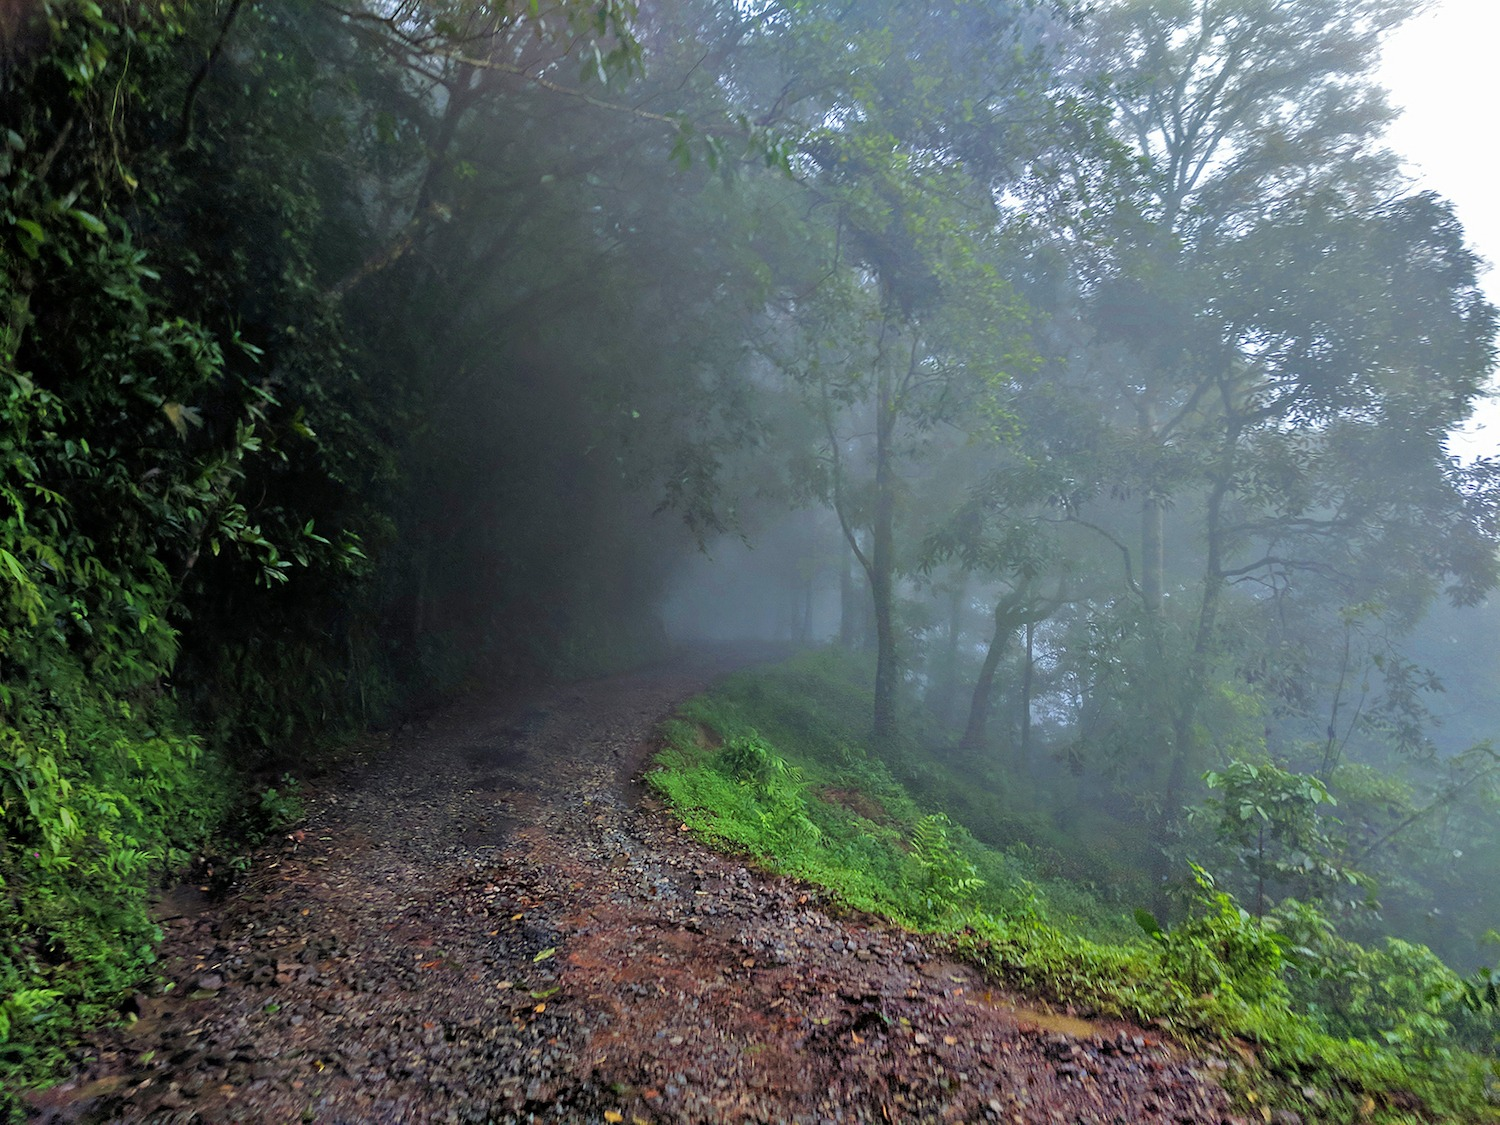 Wayanad's misty winding roads offer a prelude to the mysteries of the ancient Western Ghats that are waiting to be uncovered by those who wish to walk on the wild side. Photo: Shashank Birla